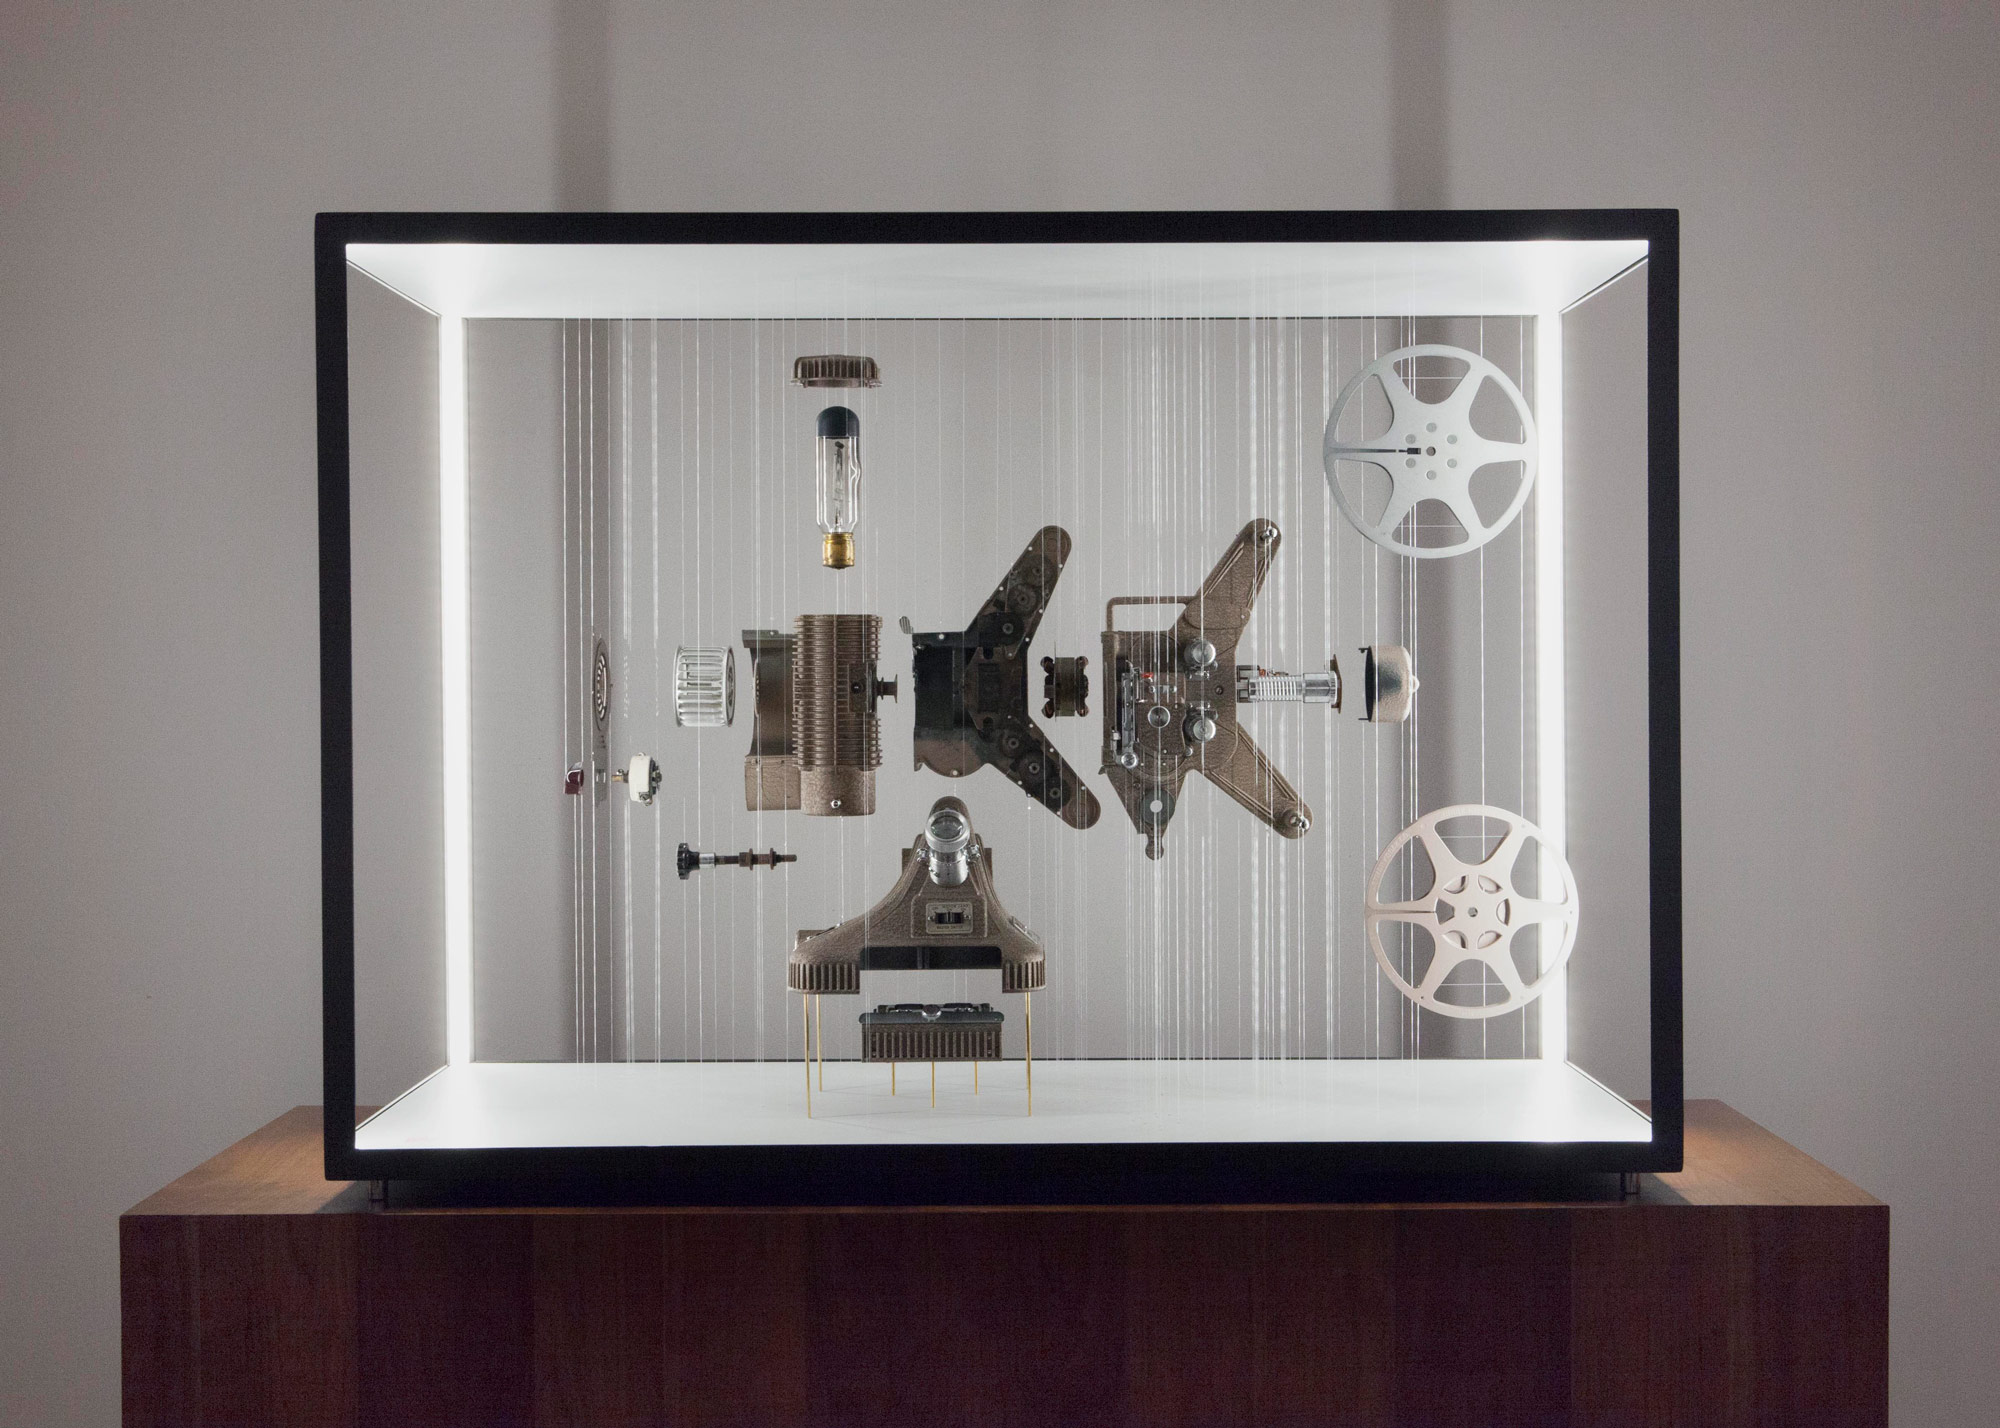 """Keystone K109"" (2018), Keystone Regal 8mm Silent Film Projector Model K-109 (c. 1953), wood, latex, steel & fluorocarbon mono-filament, LED lighting, 42 x 30 x 18 in"